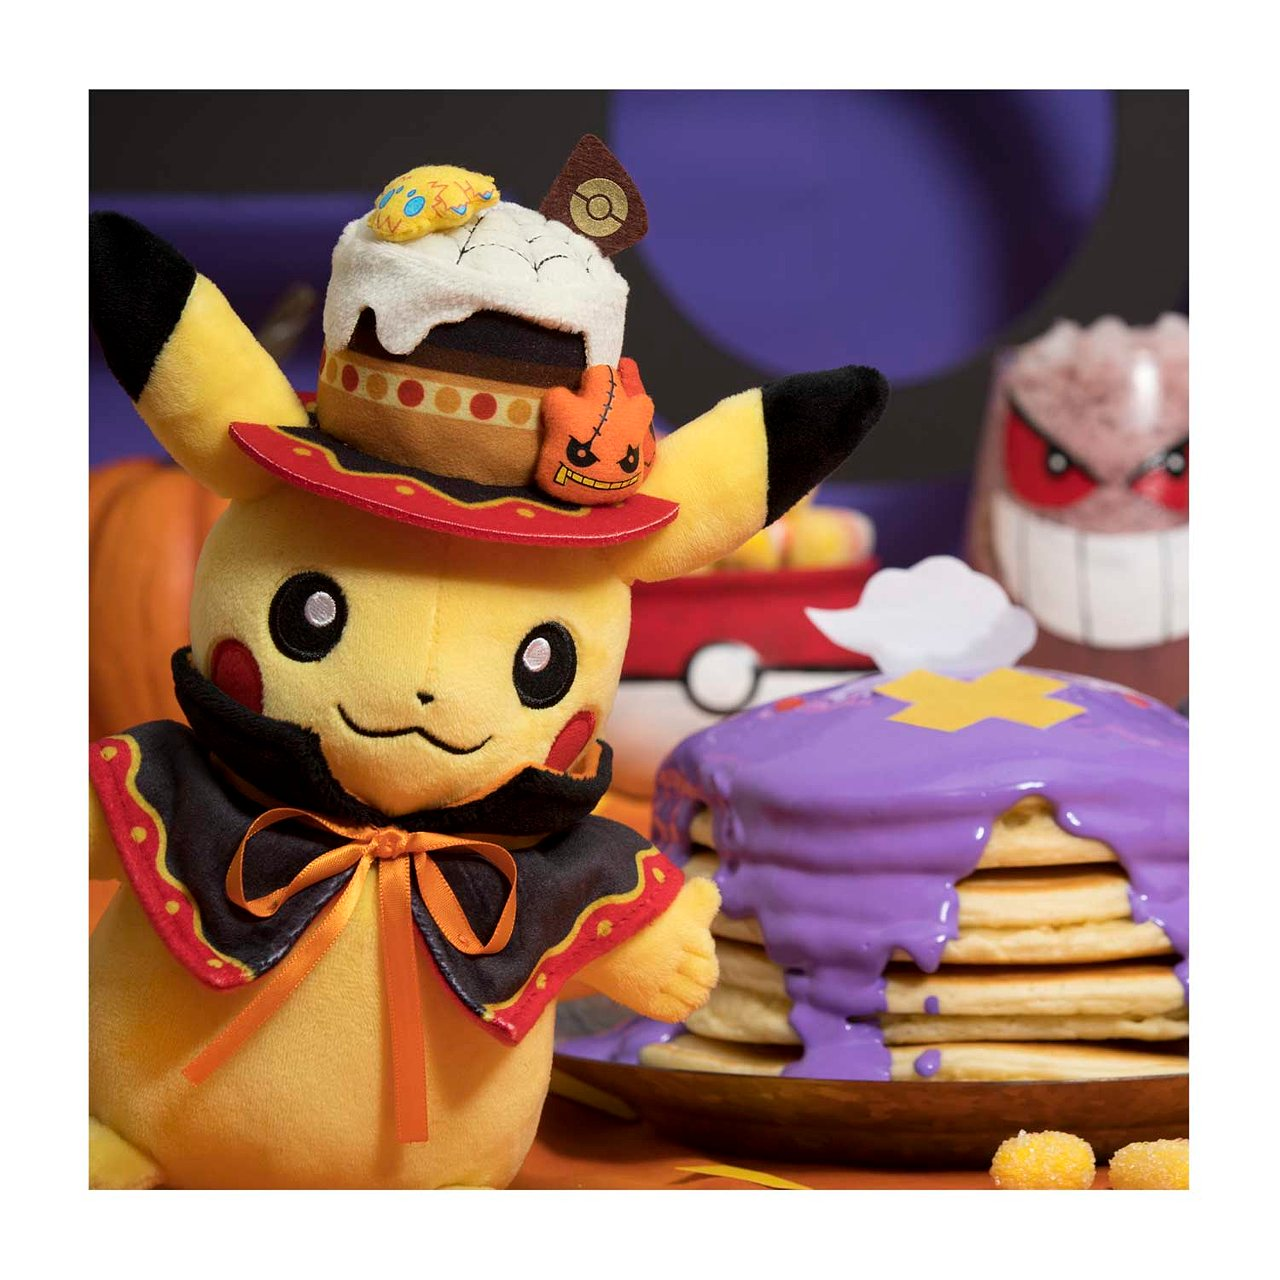 new eerie delights for halloween from the pokmon center gonintendo